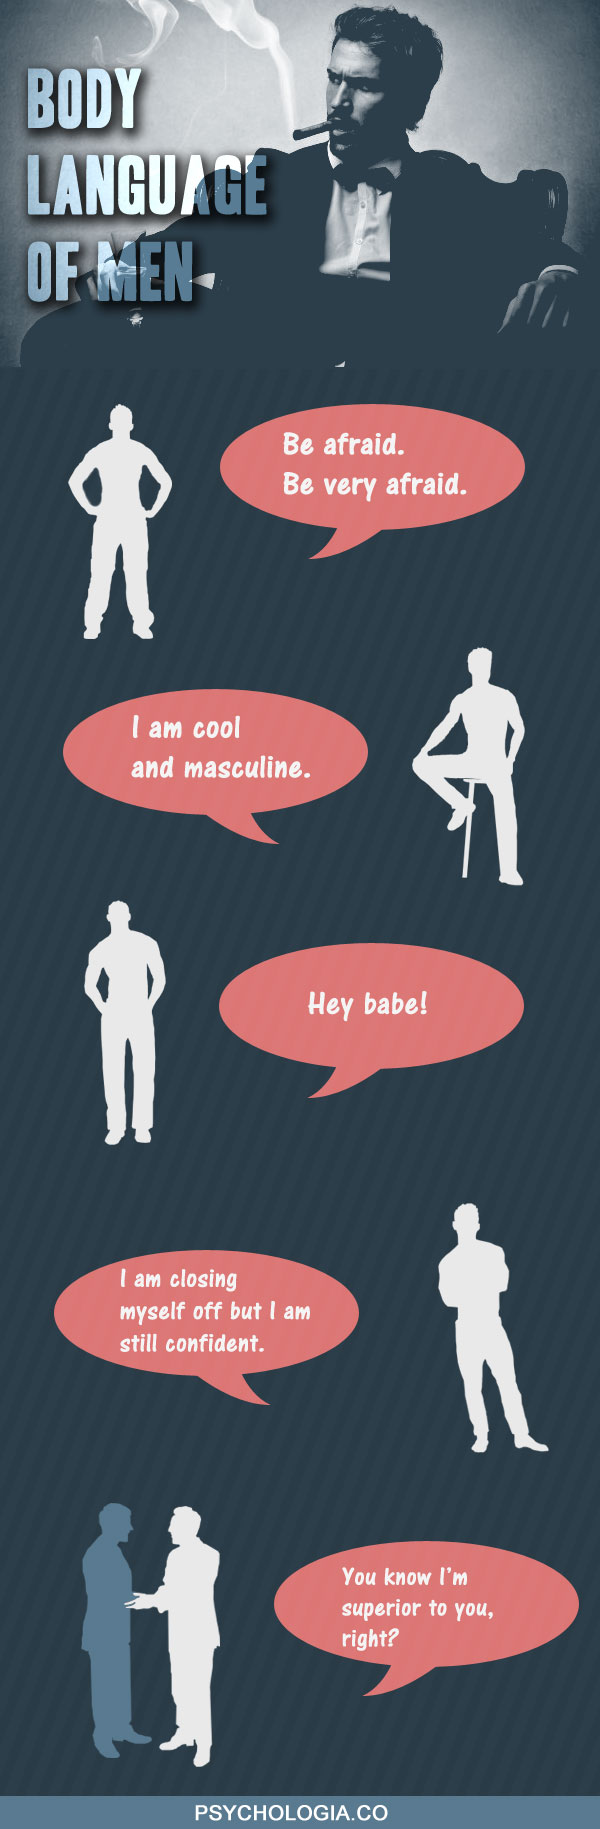 Infographic: Body Language of Men by Psychologia.co